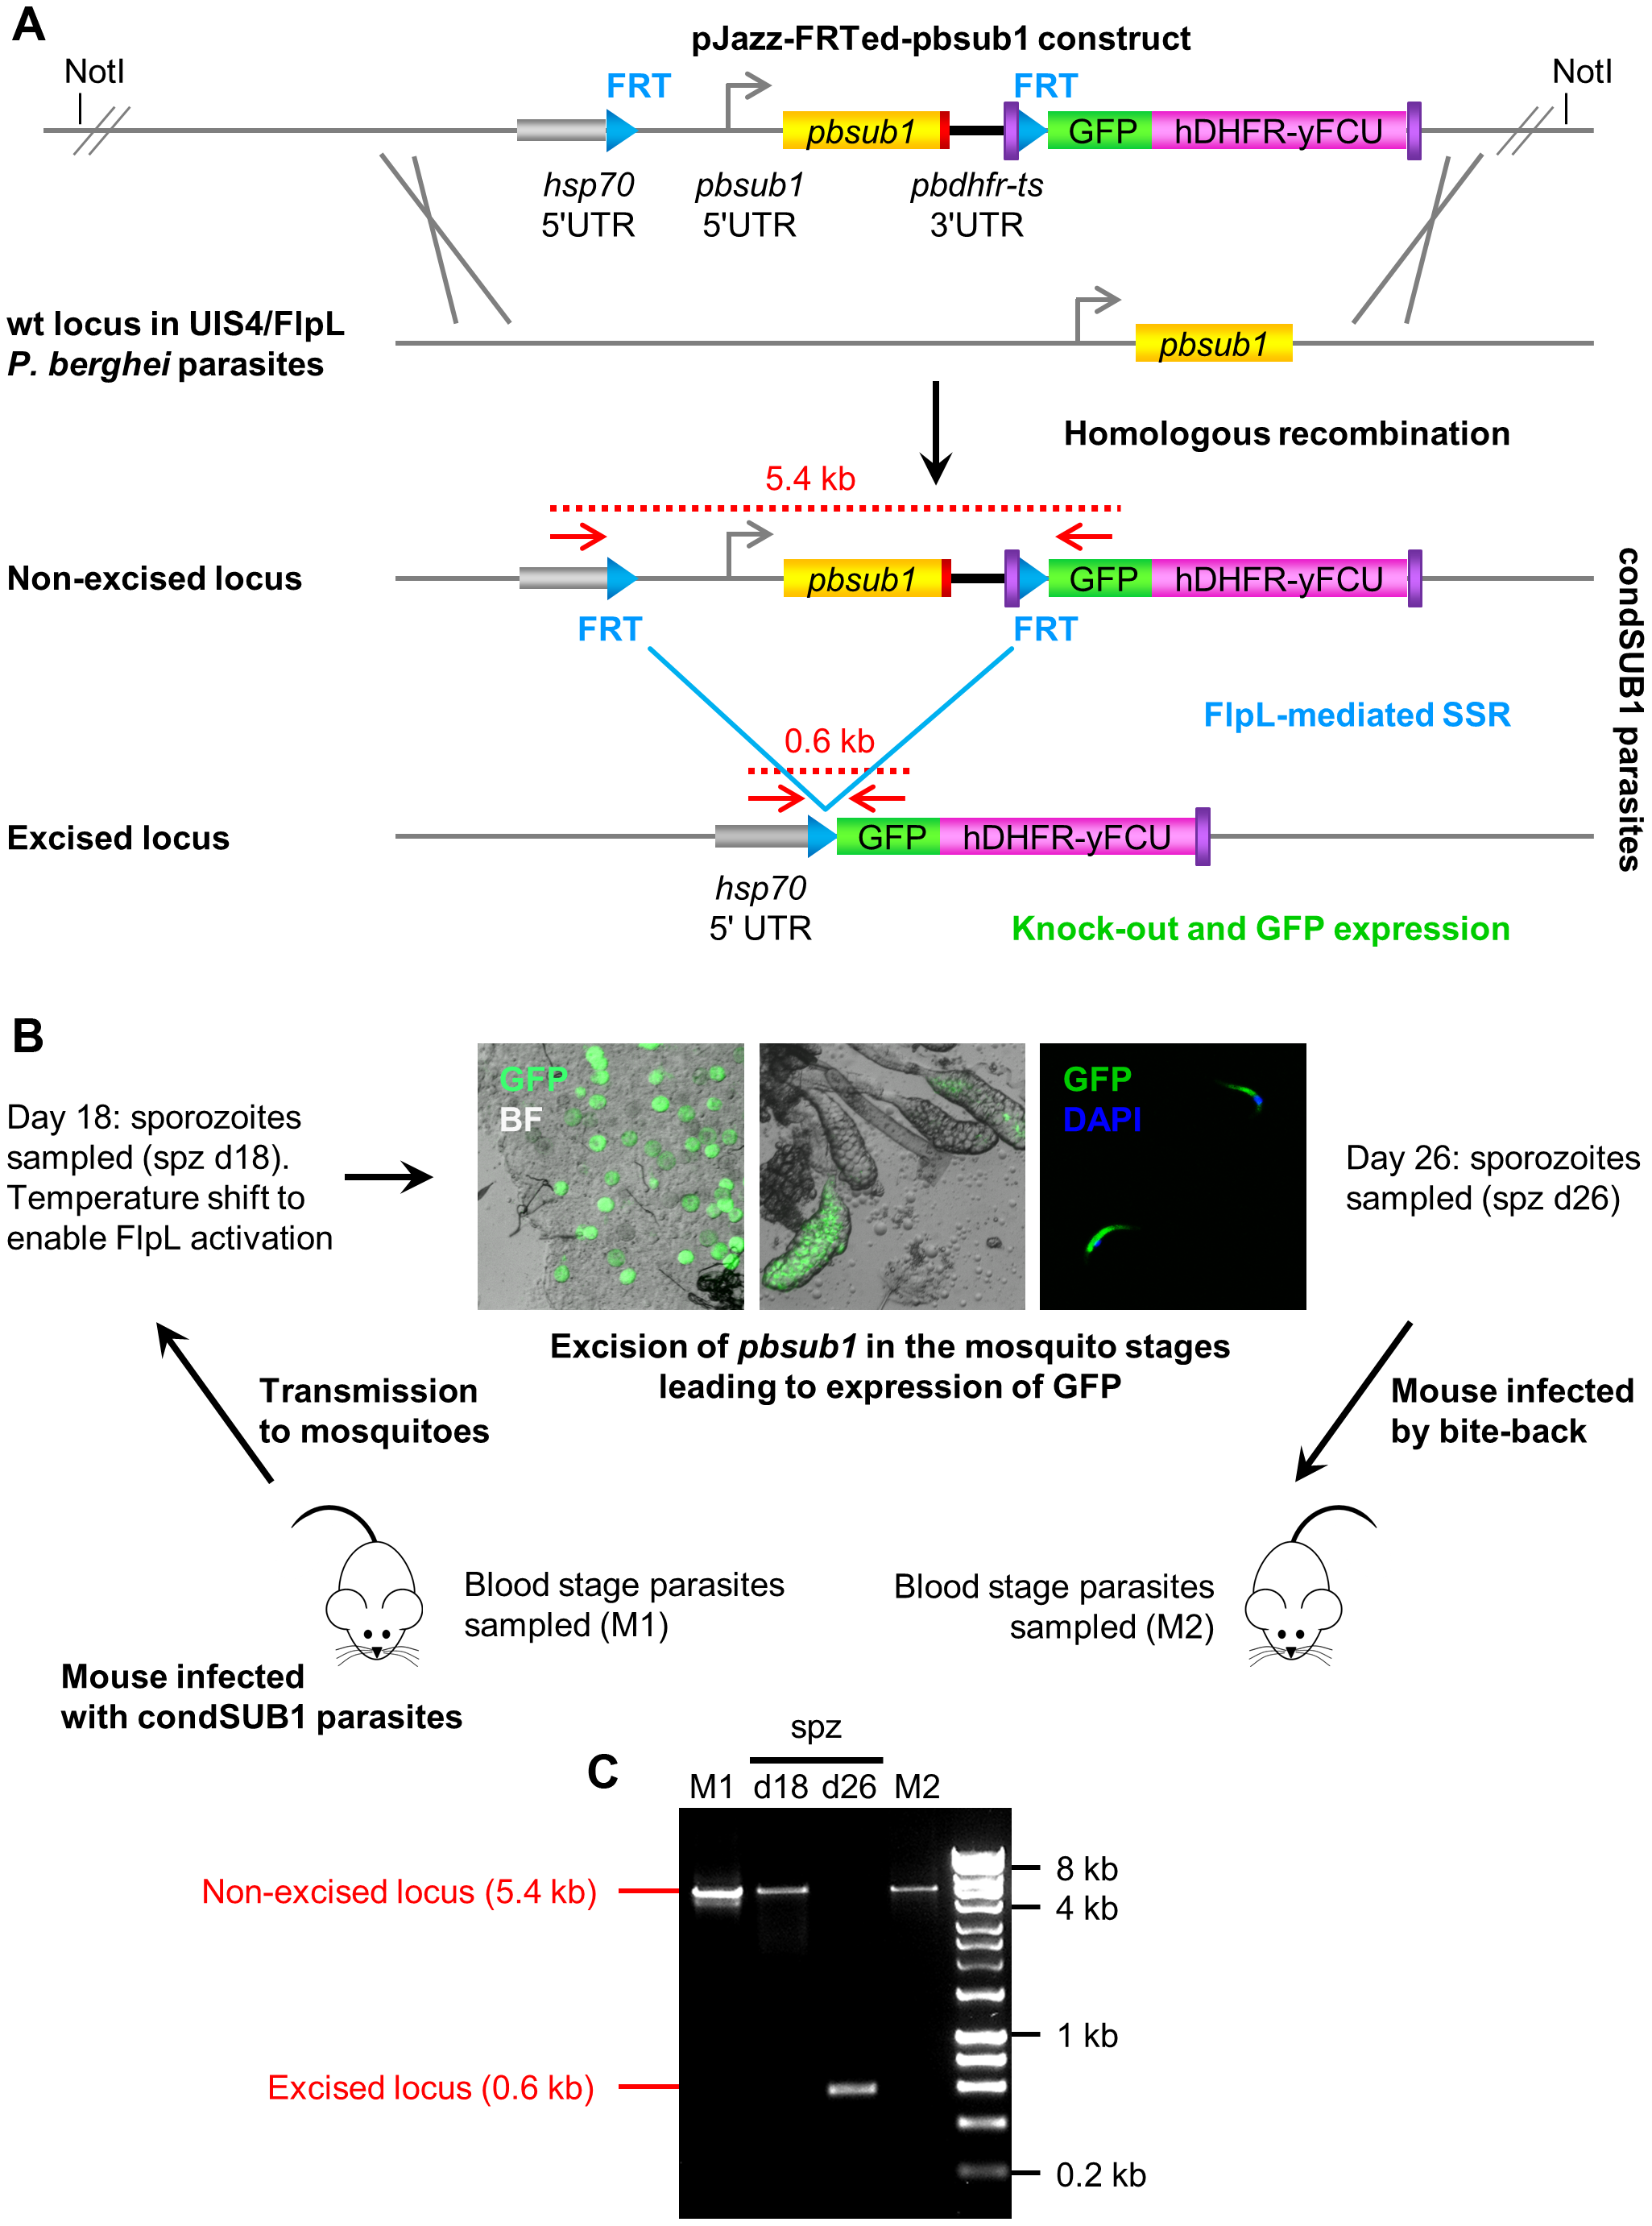 Insect stage-specific conditional deletion of the <i>pbsub1</i> gene blocks the transition from salivary gland sporozoite to subsequent asexual blood stages.